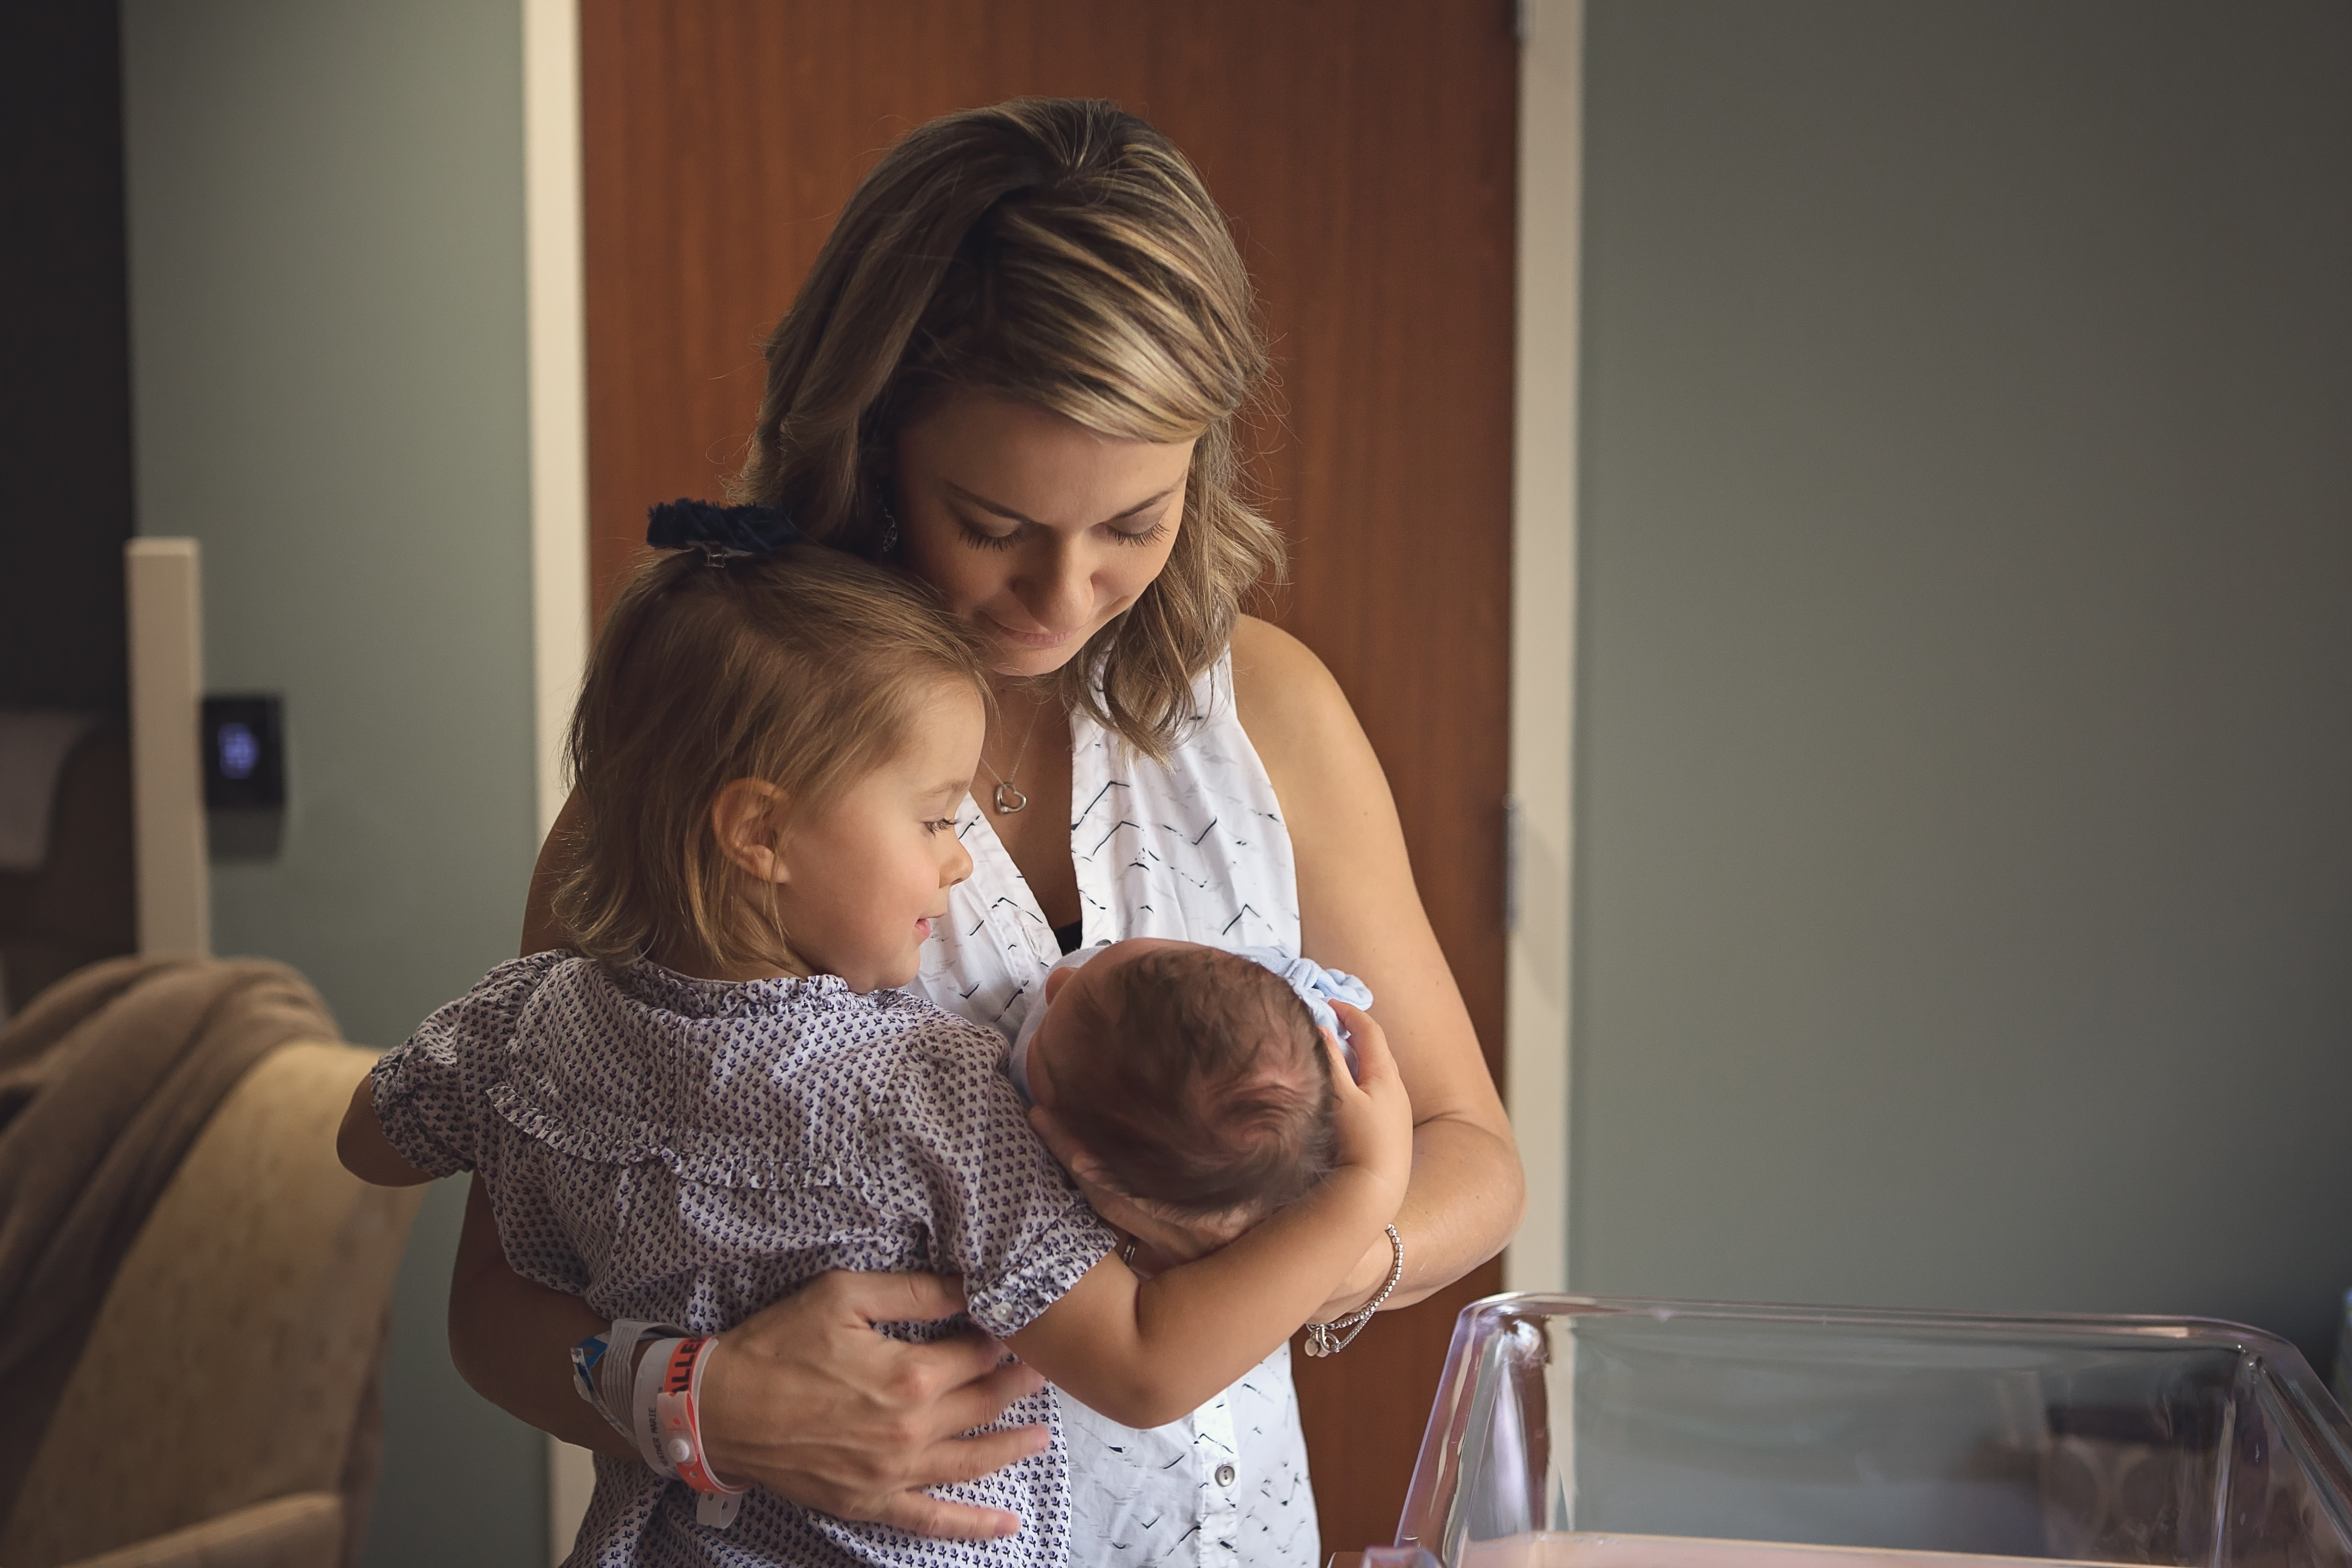 Mother with newborn baby and toddler - Nashville Fresh 48 Photographer